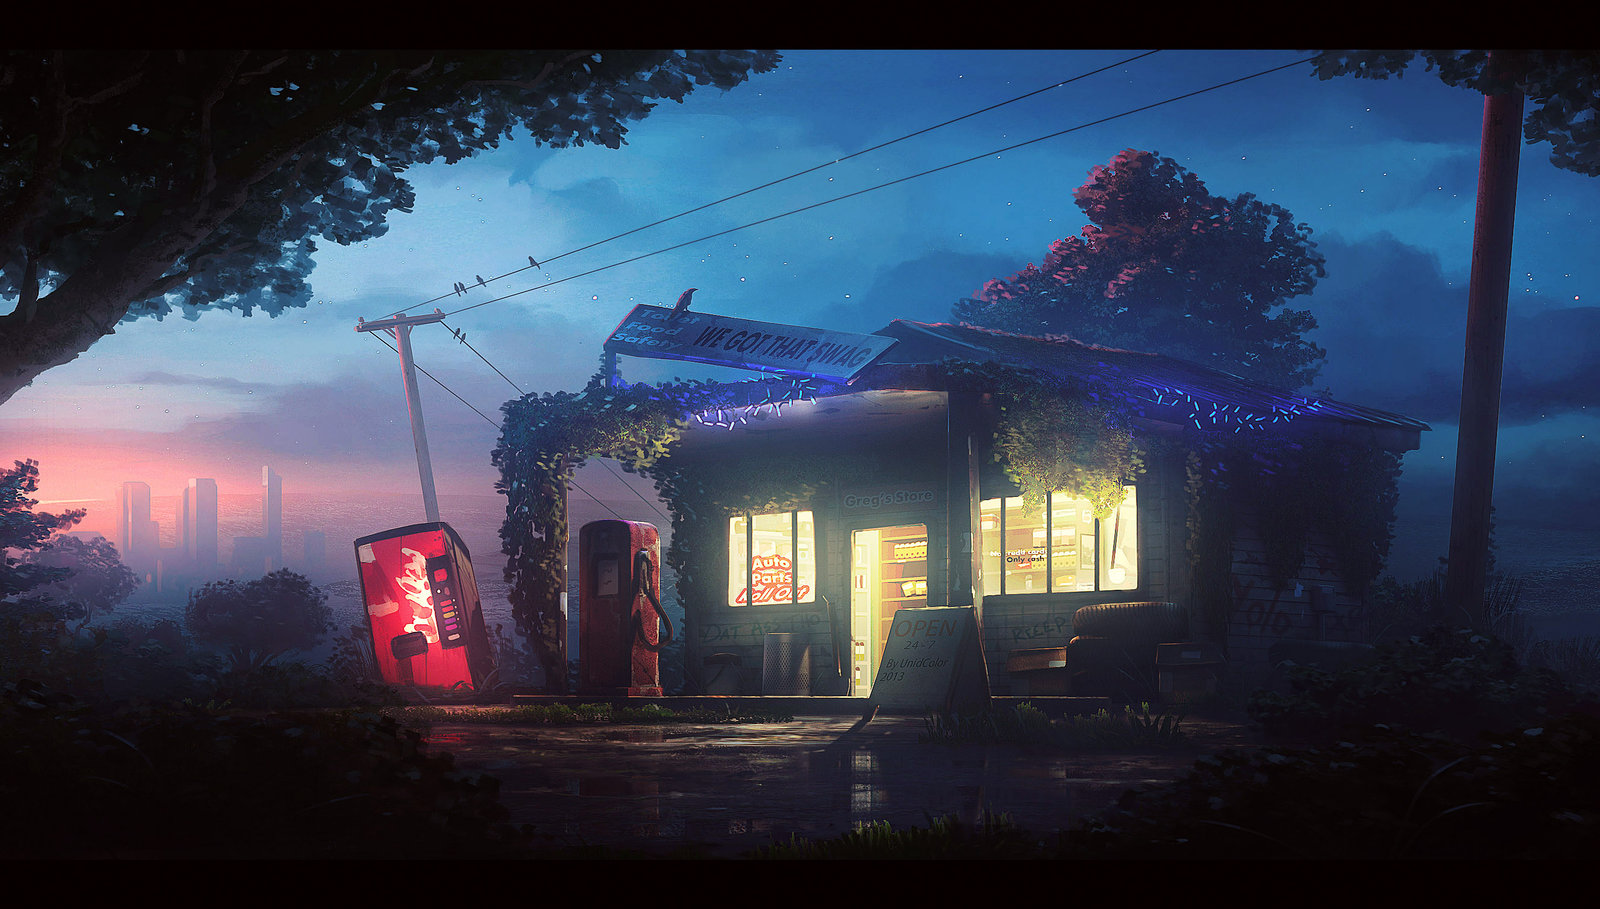 old_gas_station_by_unidcolor-d6v5vqx